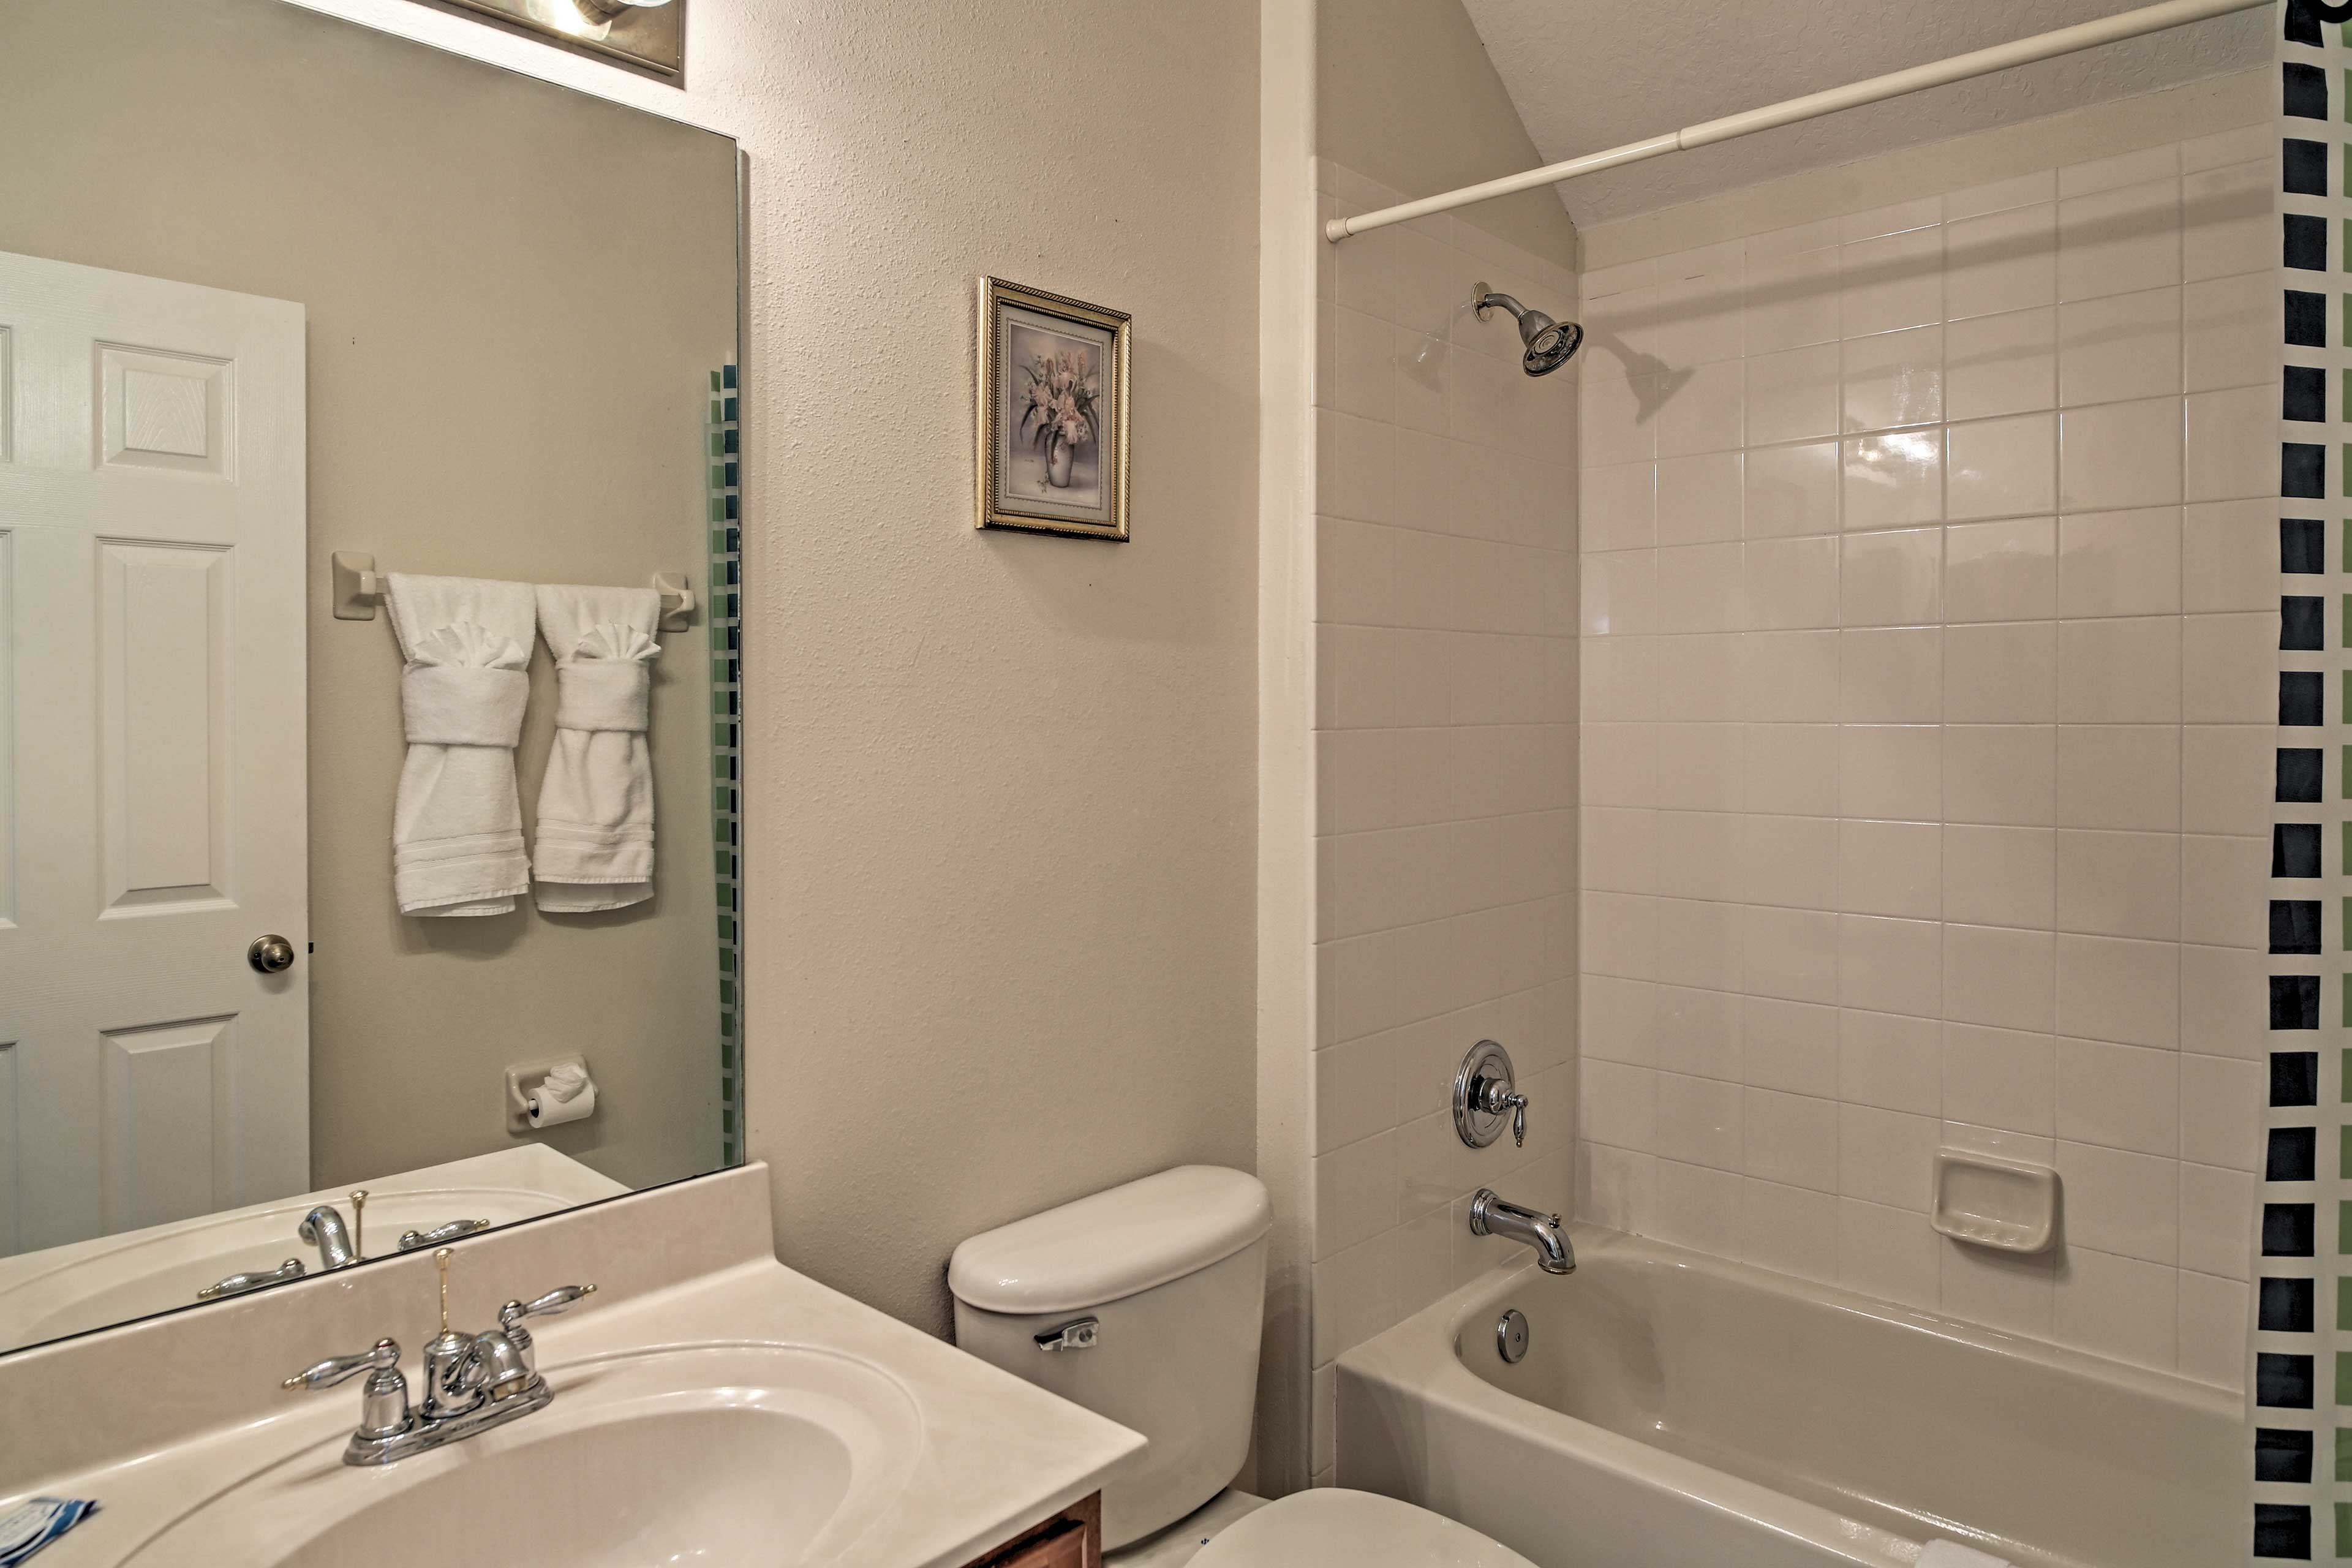 Draw a bath in the shower/tub combo.